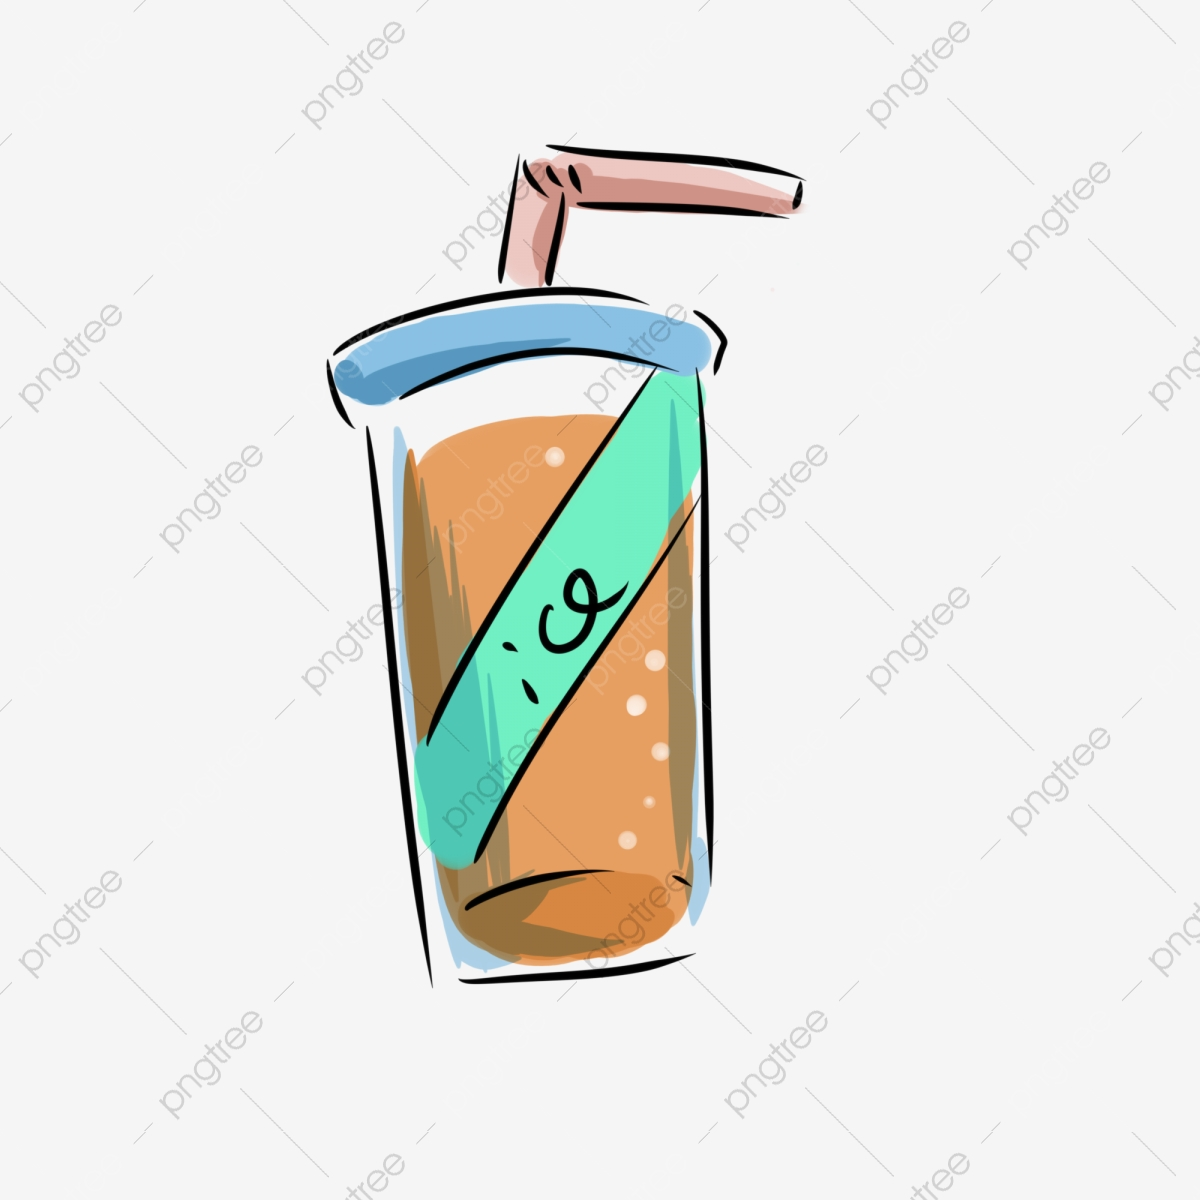 illustration wind ice orange juice summer cold drink pattern juice orange juice drink png transparent clipart image and psd file for free download pngtree